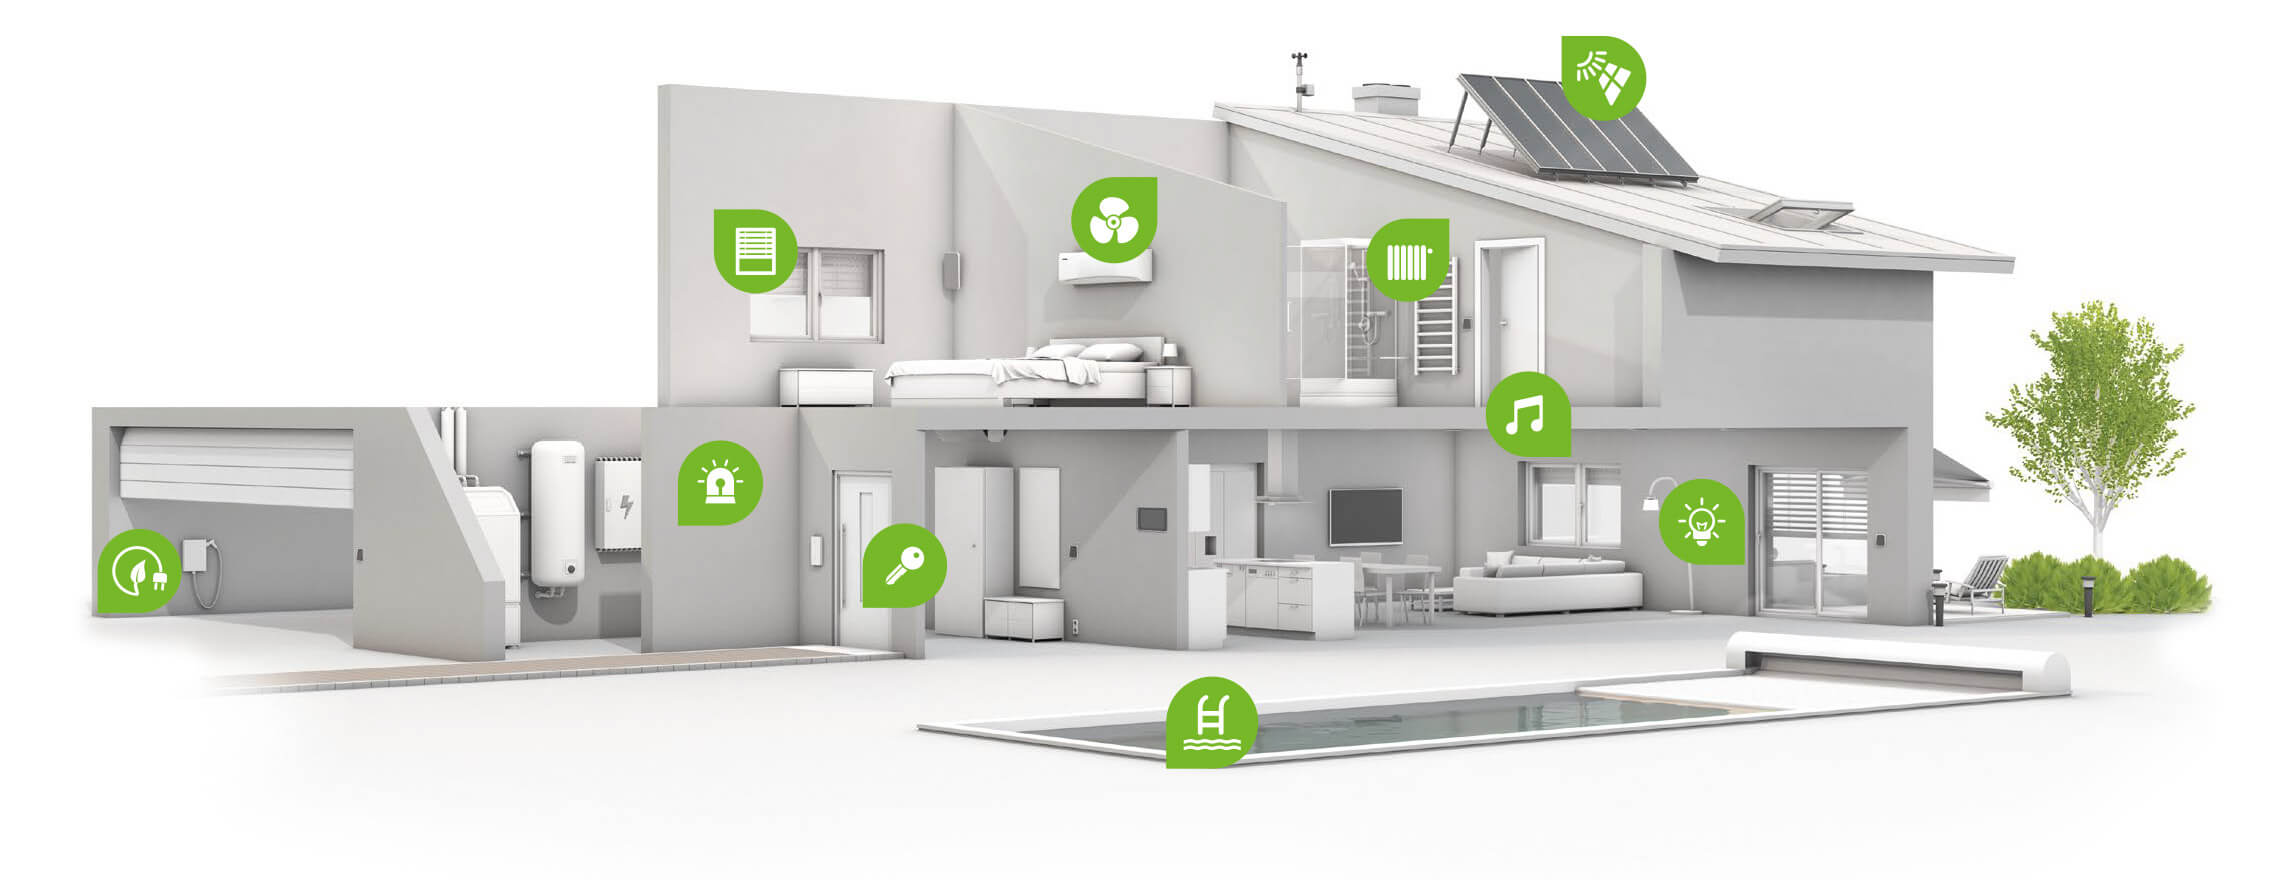 3D model of a smart home labeled with icons